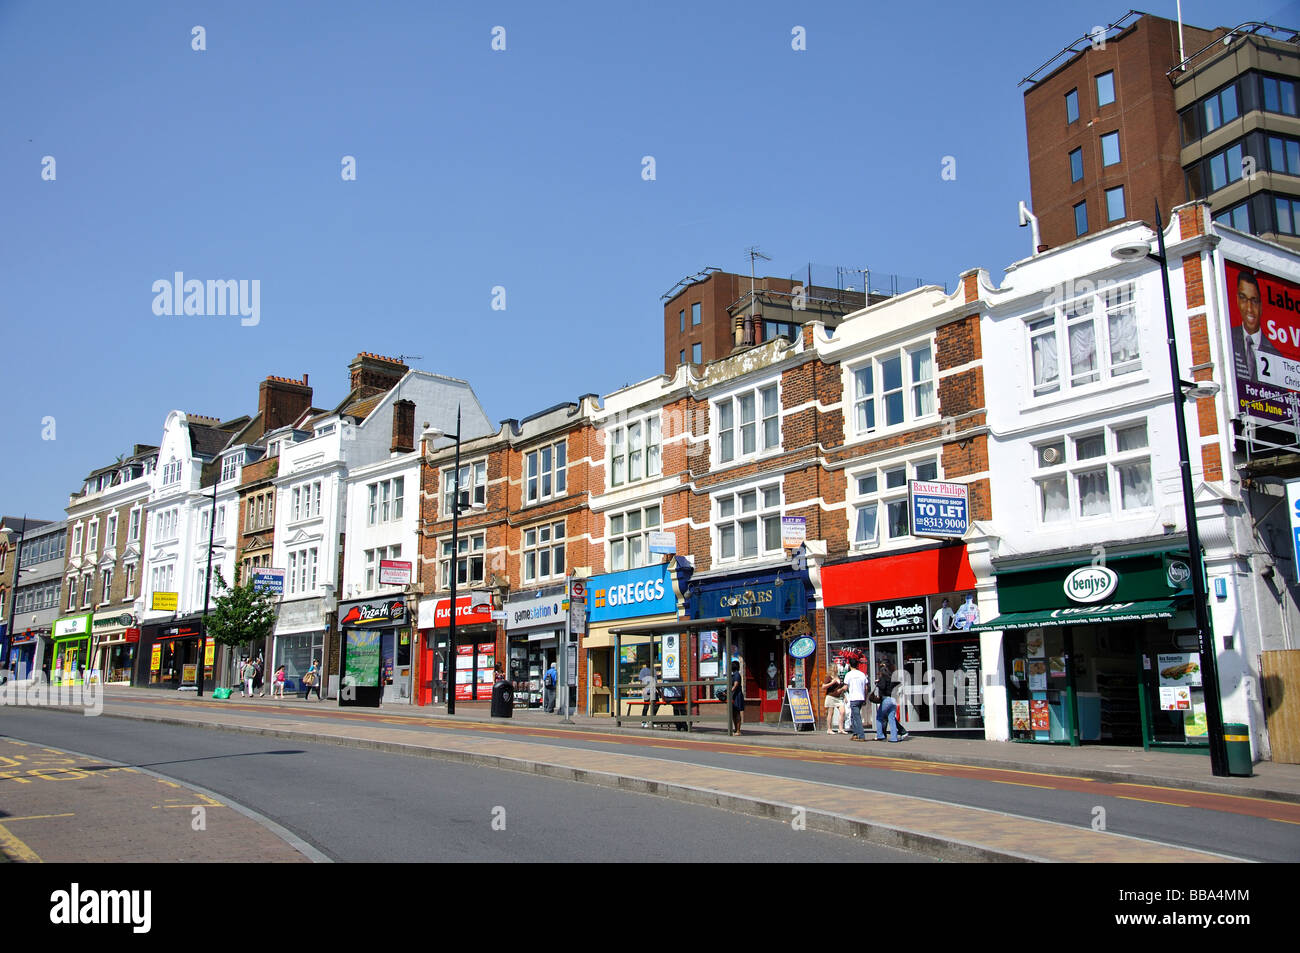 High street bromley greater london stock photos high for The bromley